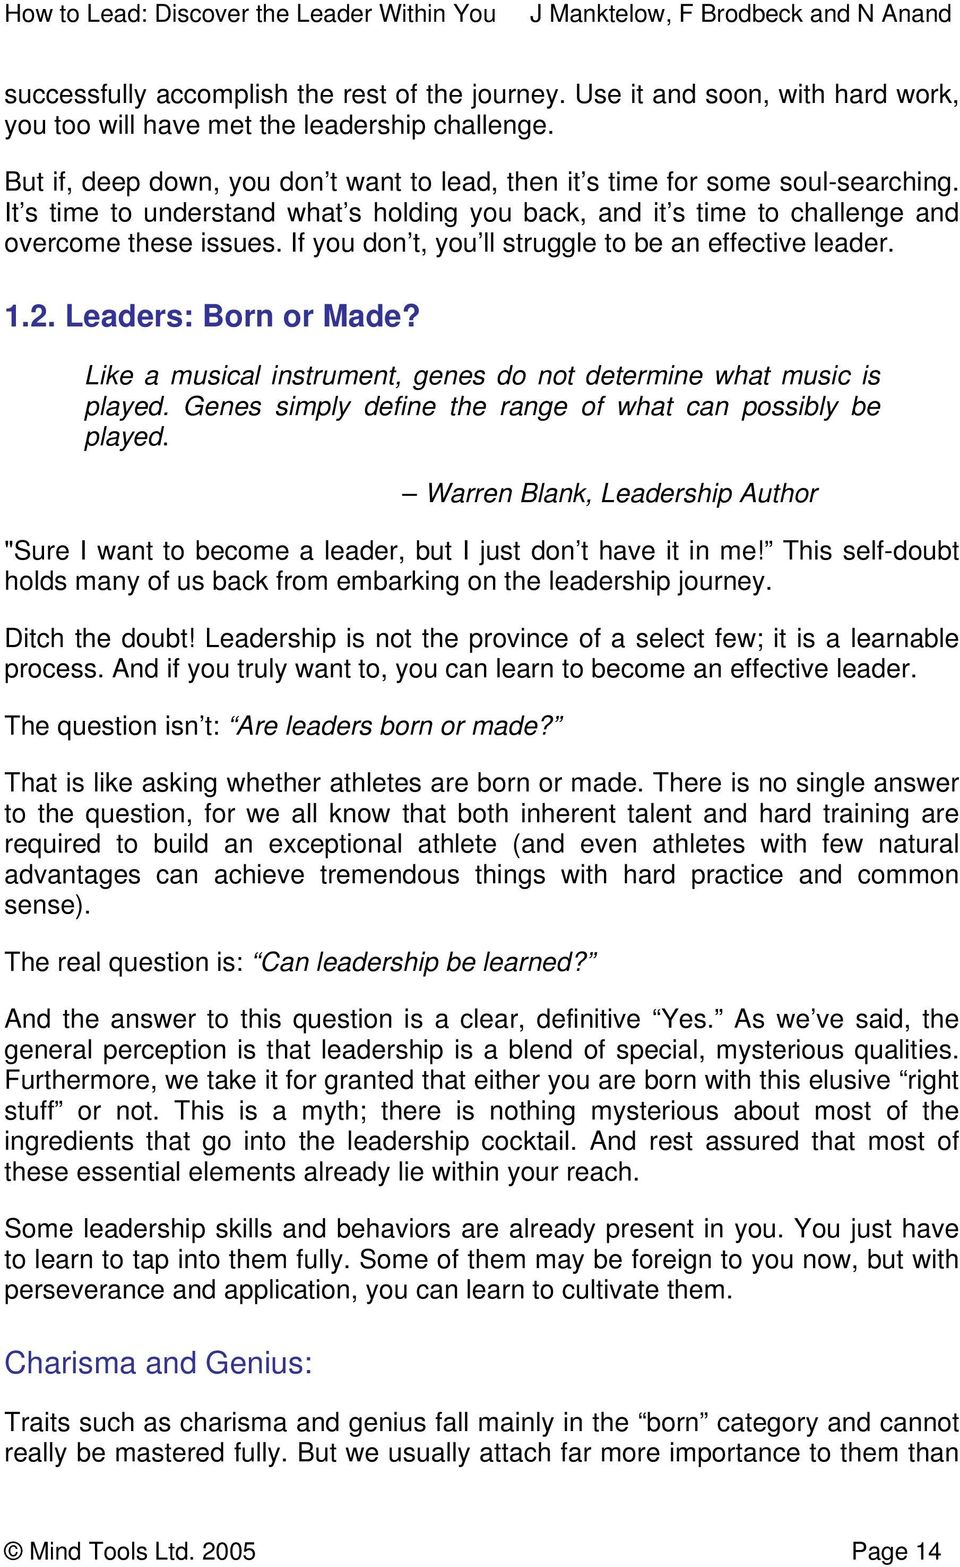 If you don t, you ll struggle to be an effective leader. 1.2. Leaders: Born or Made? Like a musical instrument, genes do not determine what music is played.